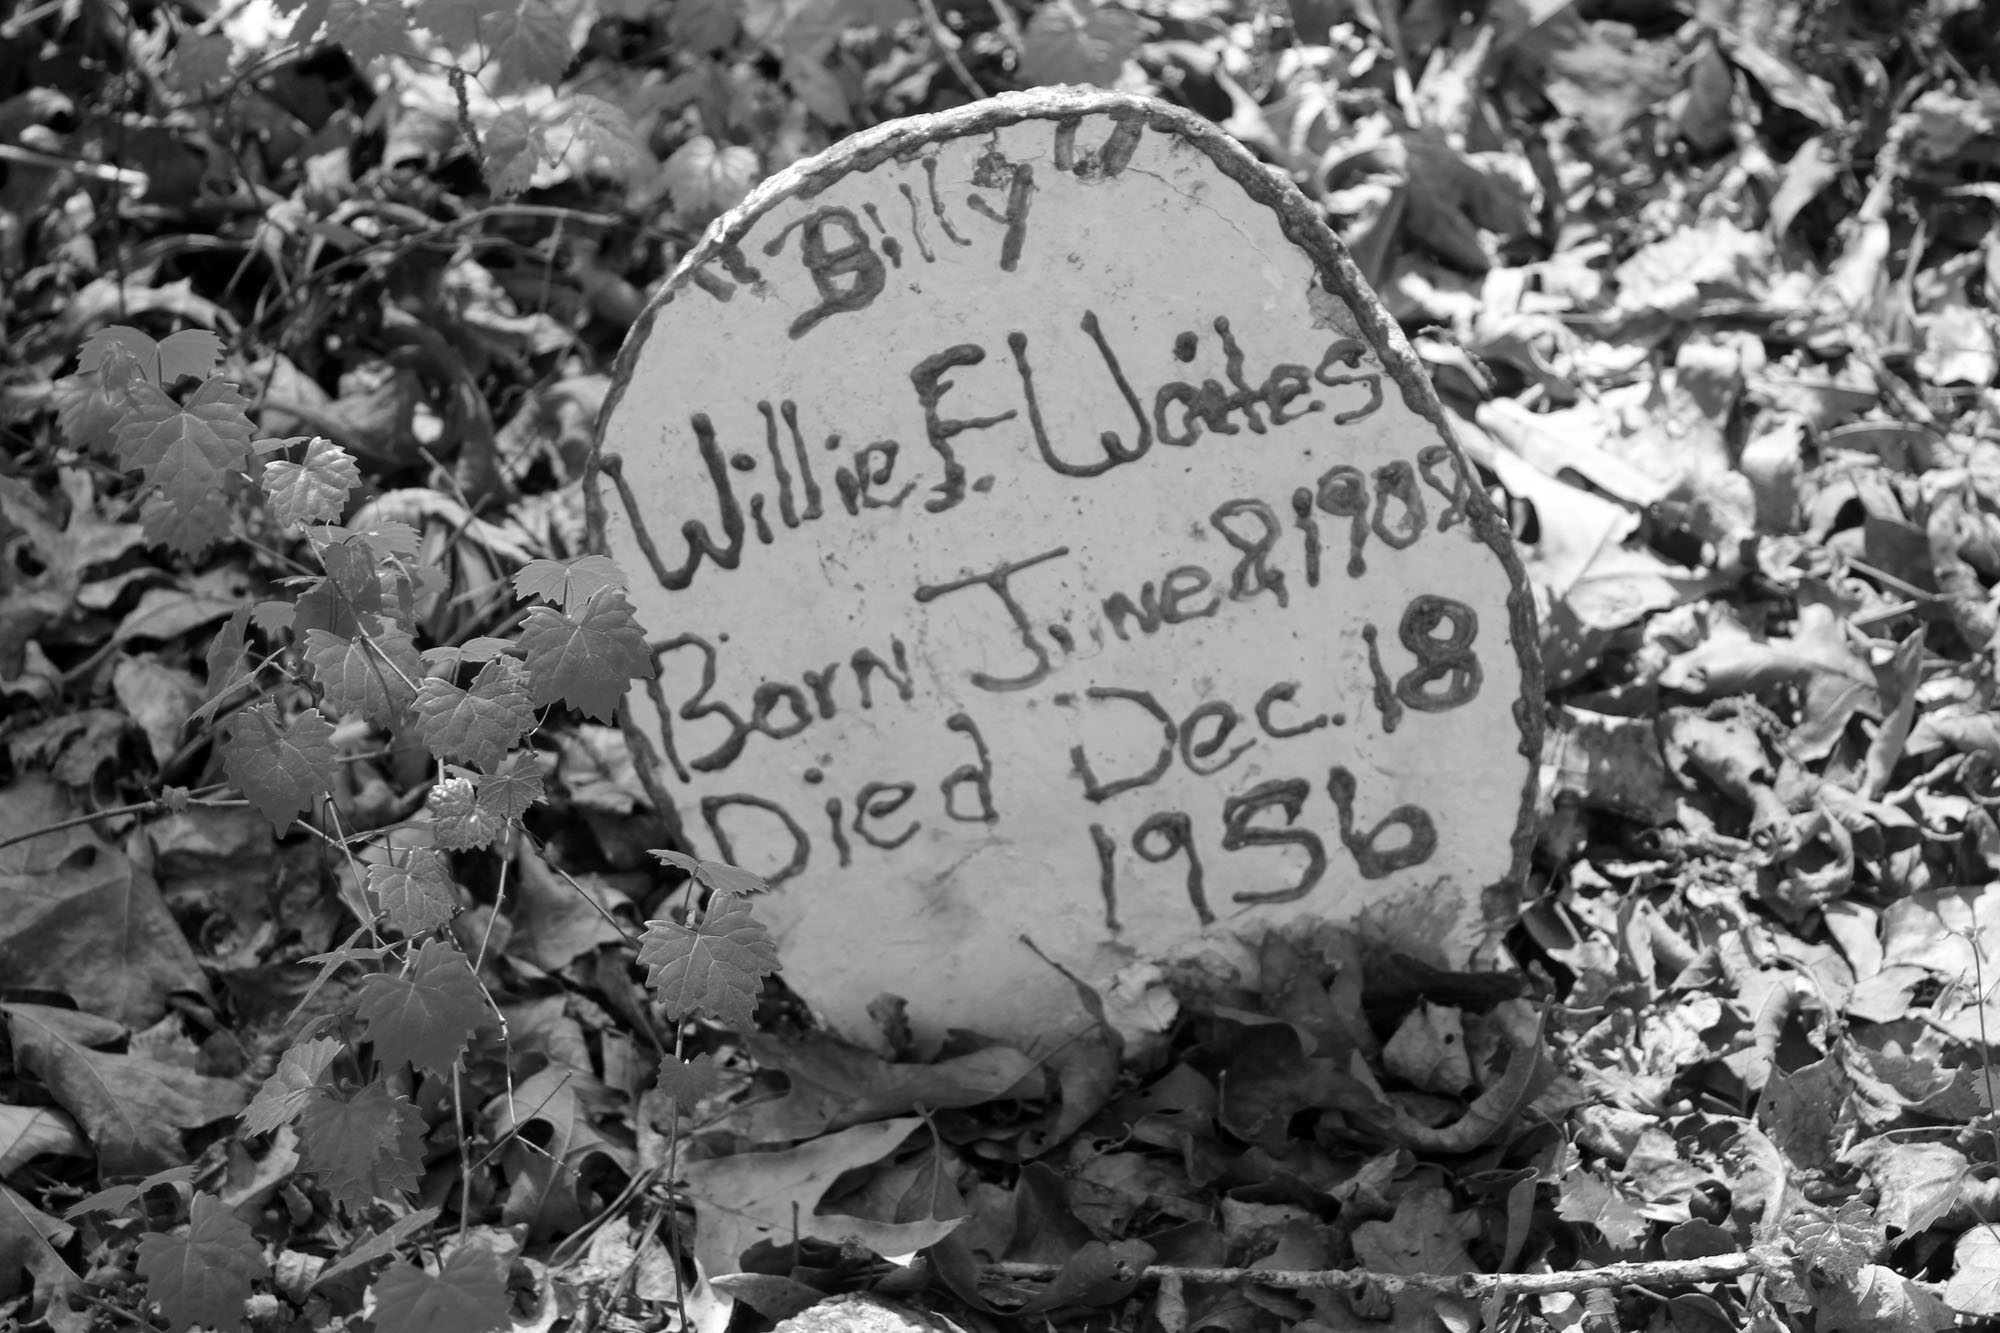 Willie Waits Grave in the Flat Rock Cemetery